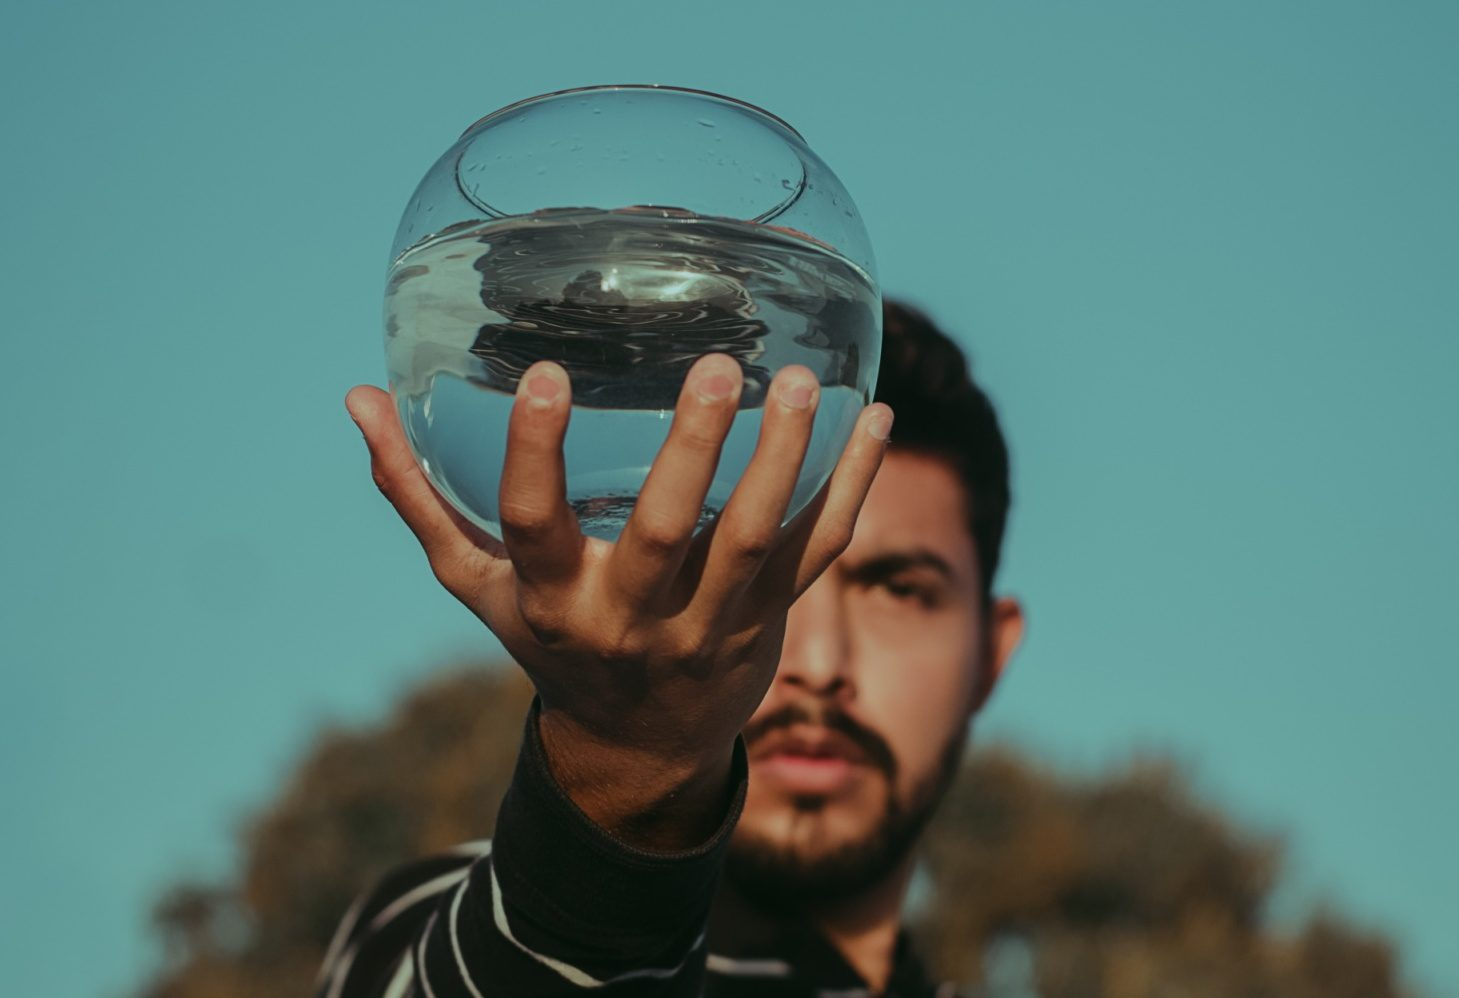 man holding large round glass of water outside